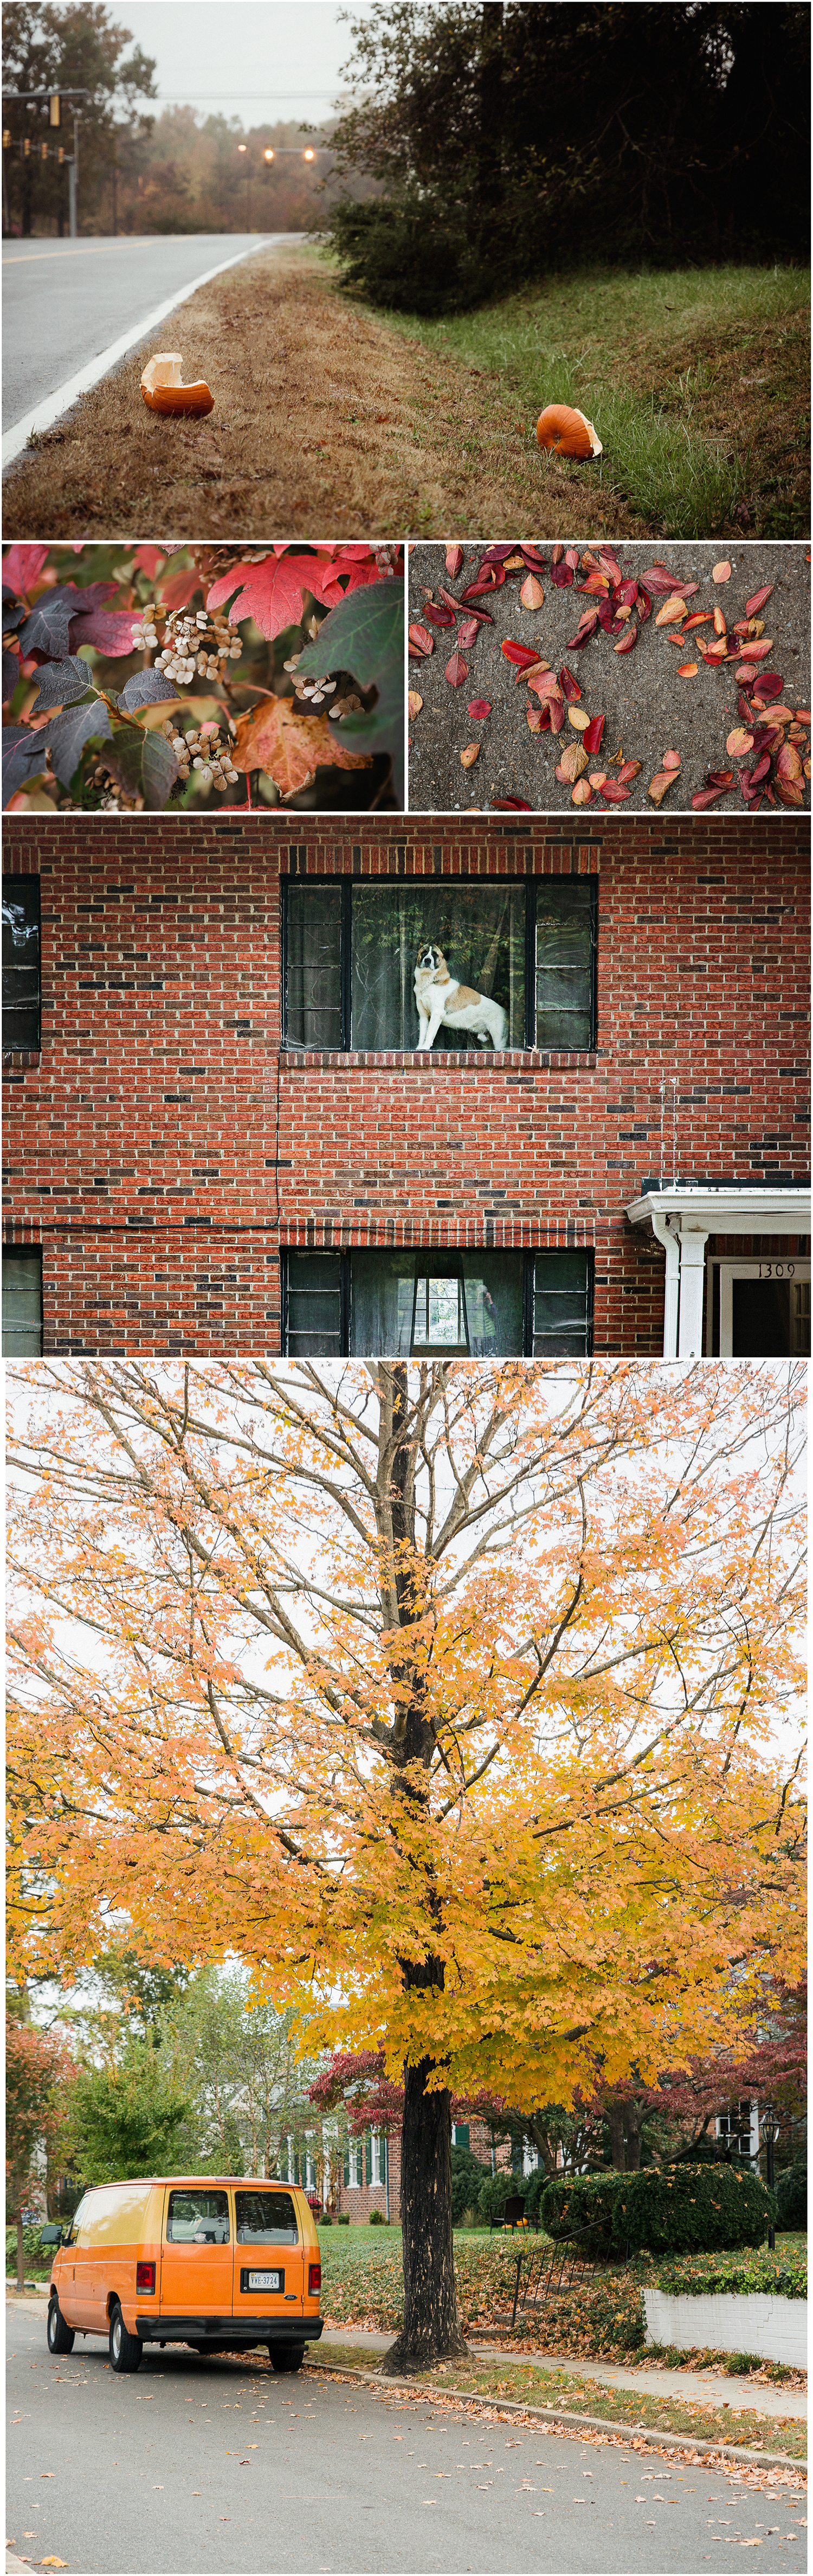 Downtown_walkabout_fall_Collage.jpg